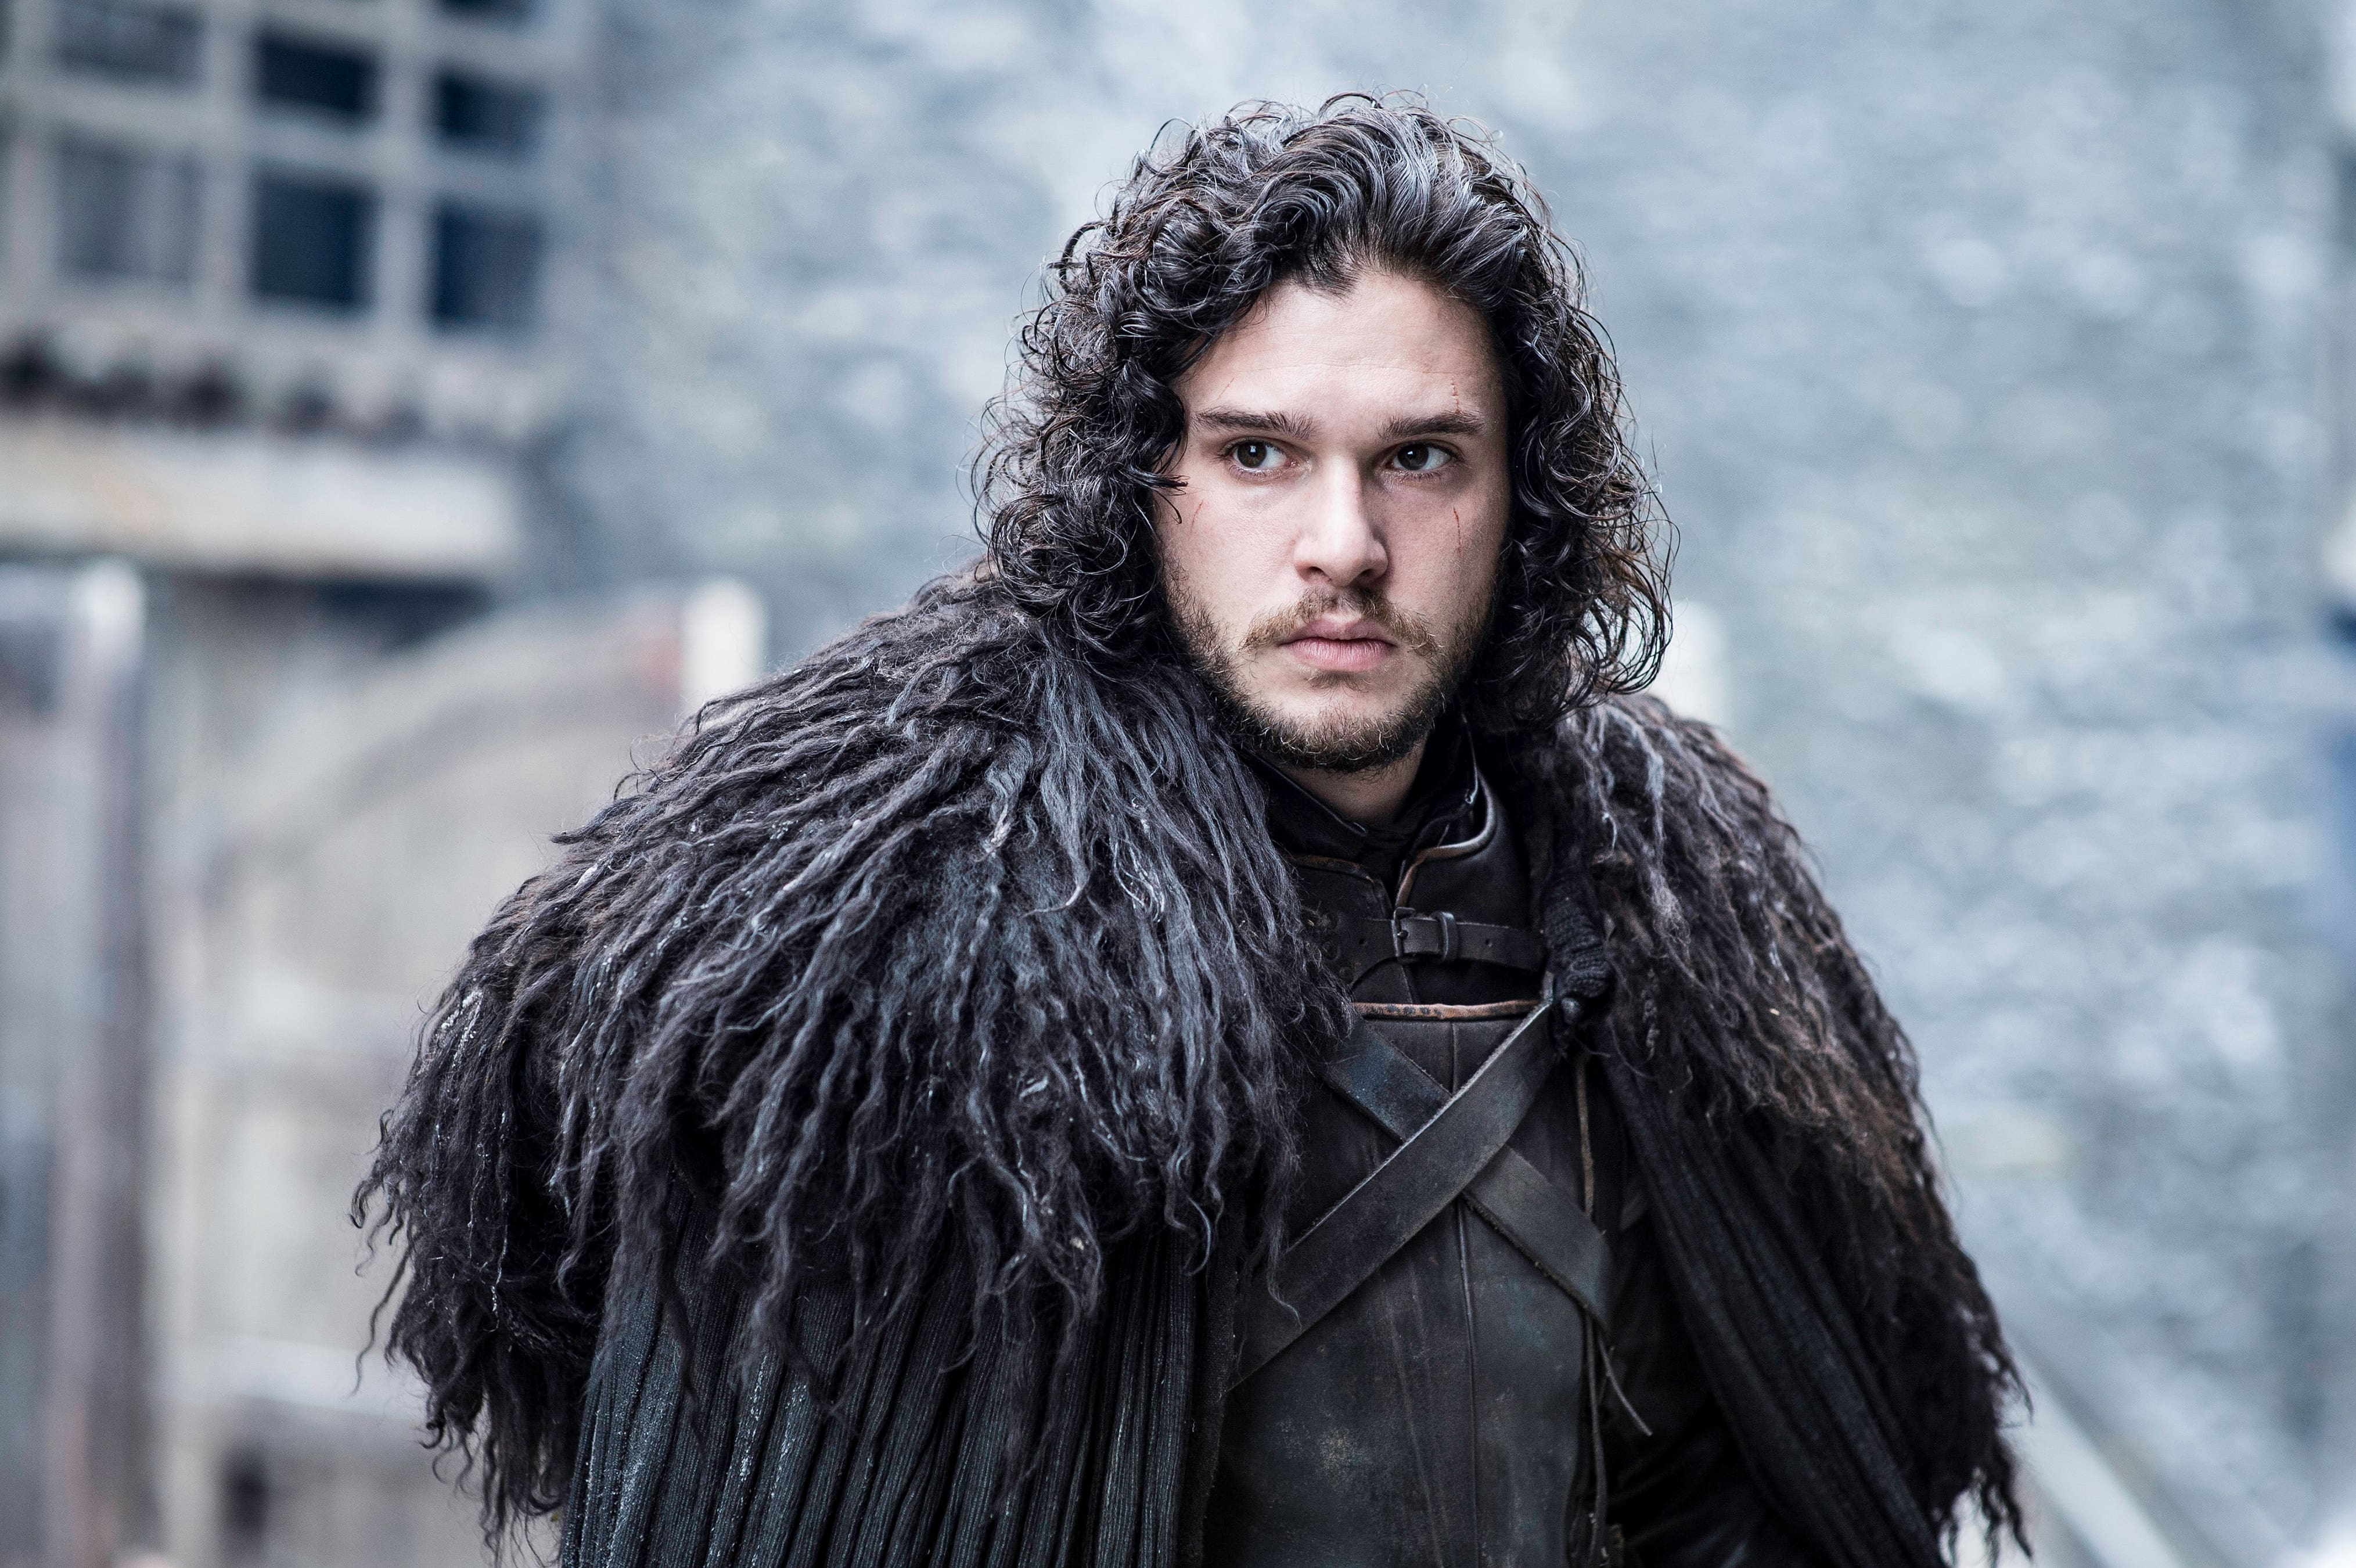 'Game of Thrones' final season to air in the 'first half' of 2019, says HBO